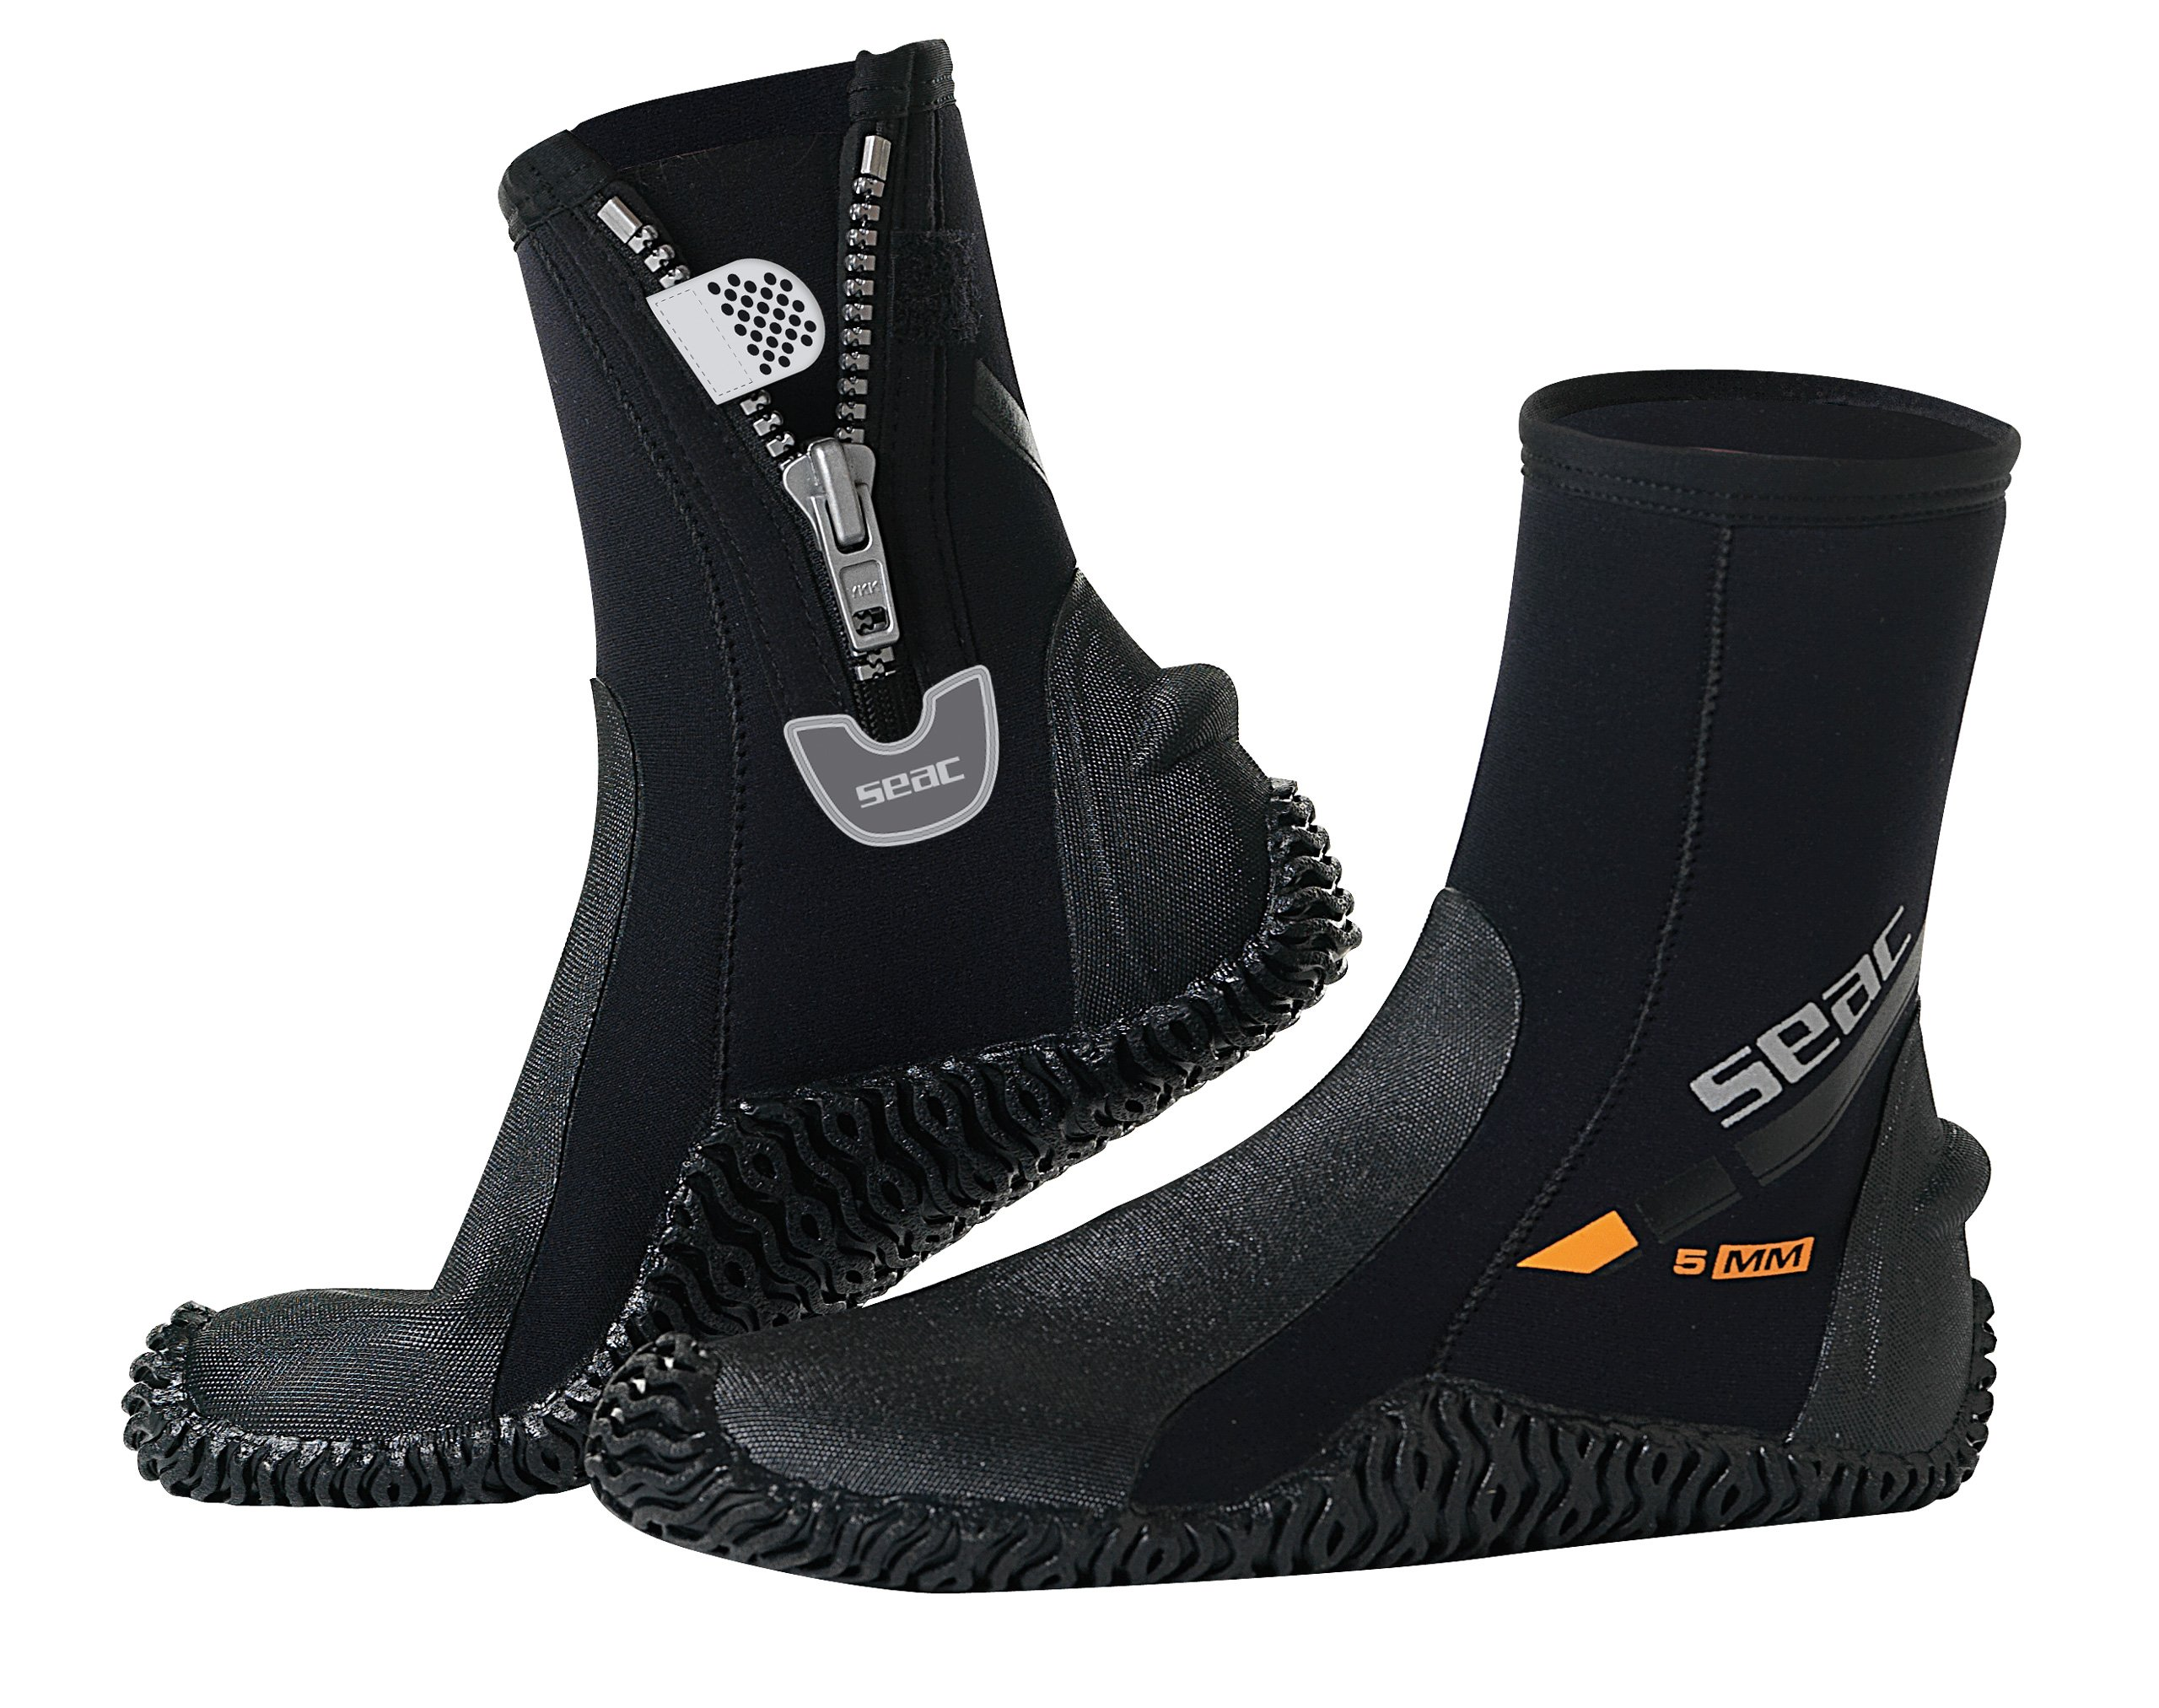 SEAC Basic HD 5mm Neoprene Scuba Boots with Side Zipper, XX-Large by SEAC